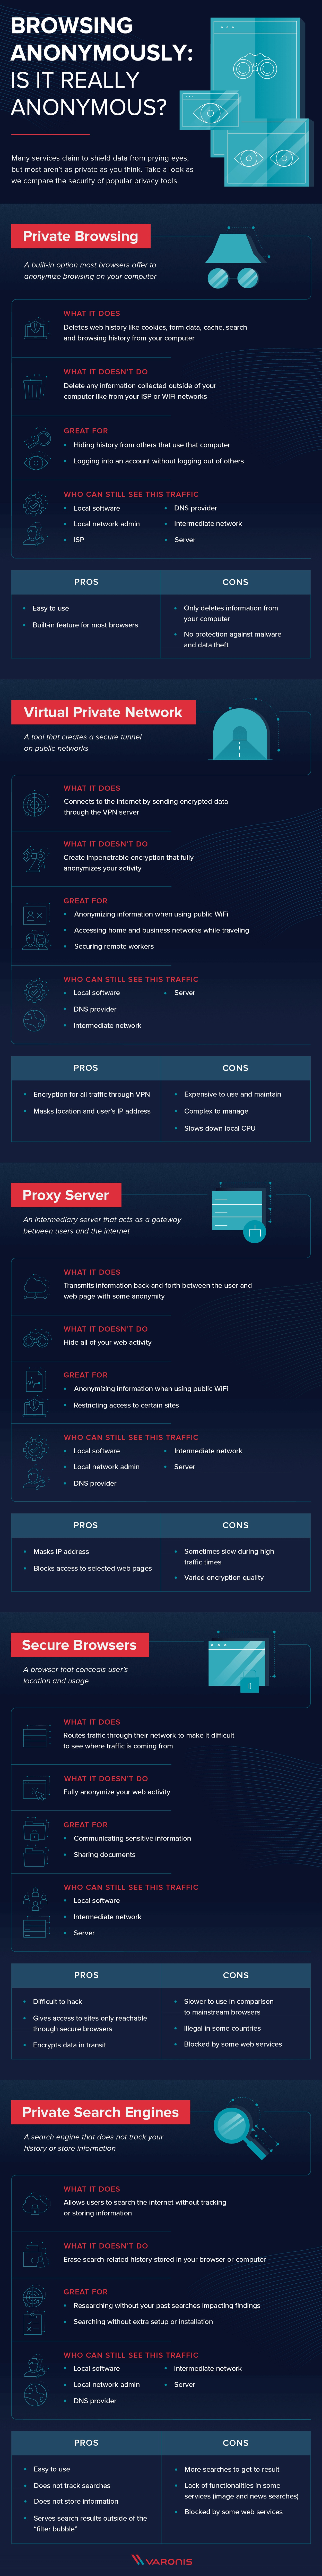 browsing-anonymously-questions-infographic